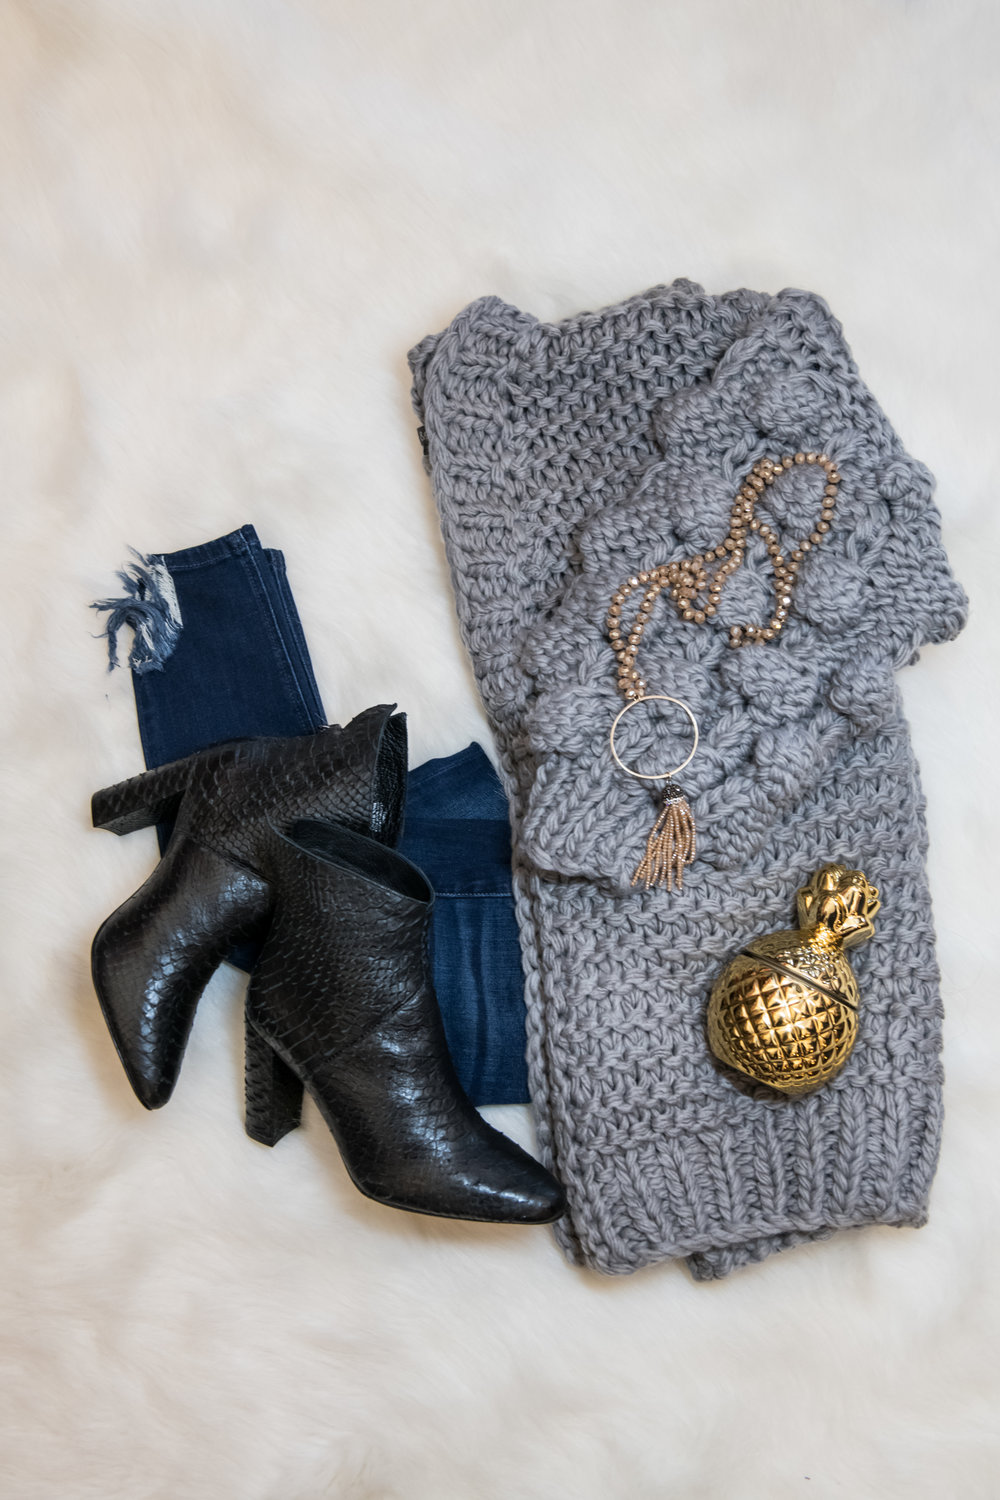 &merci chunky cable knit sweater, $89 |  Sophie & Mollies Boutique